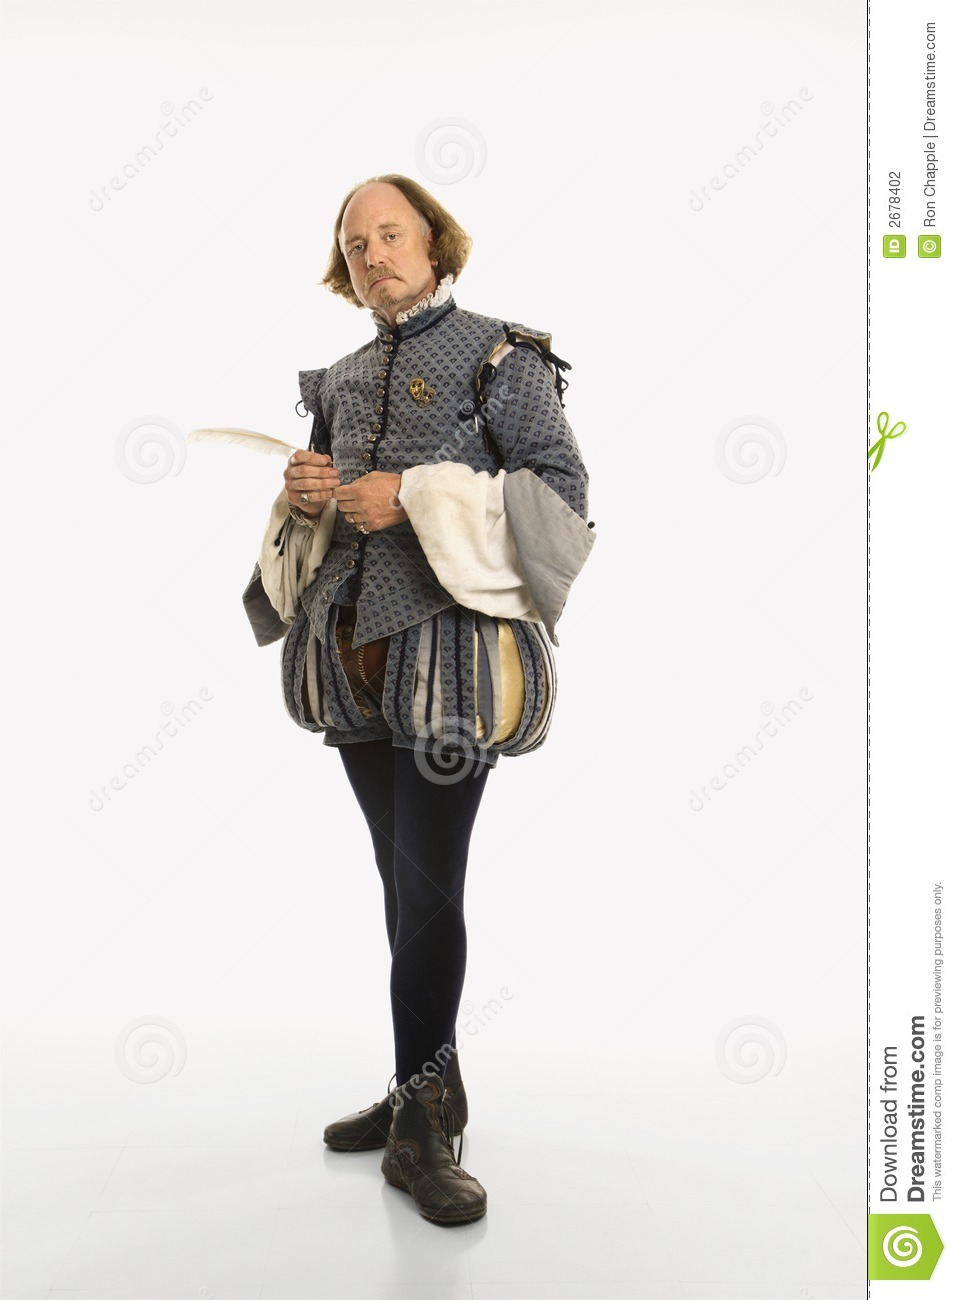 William Shakespeare costume